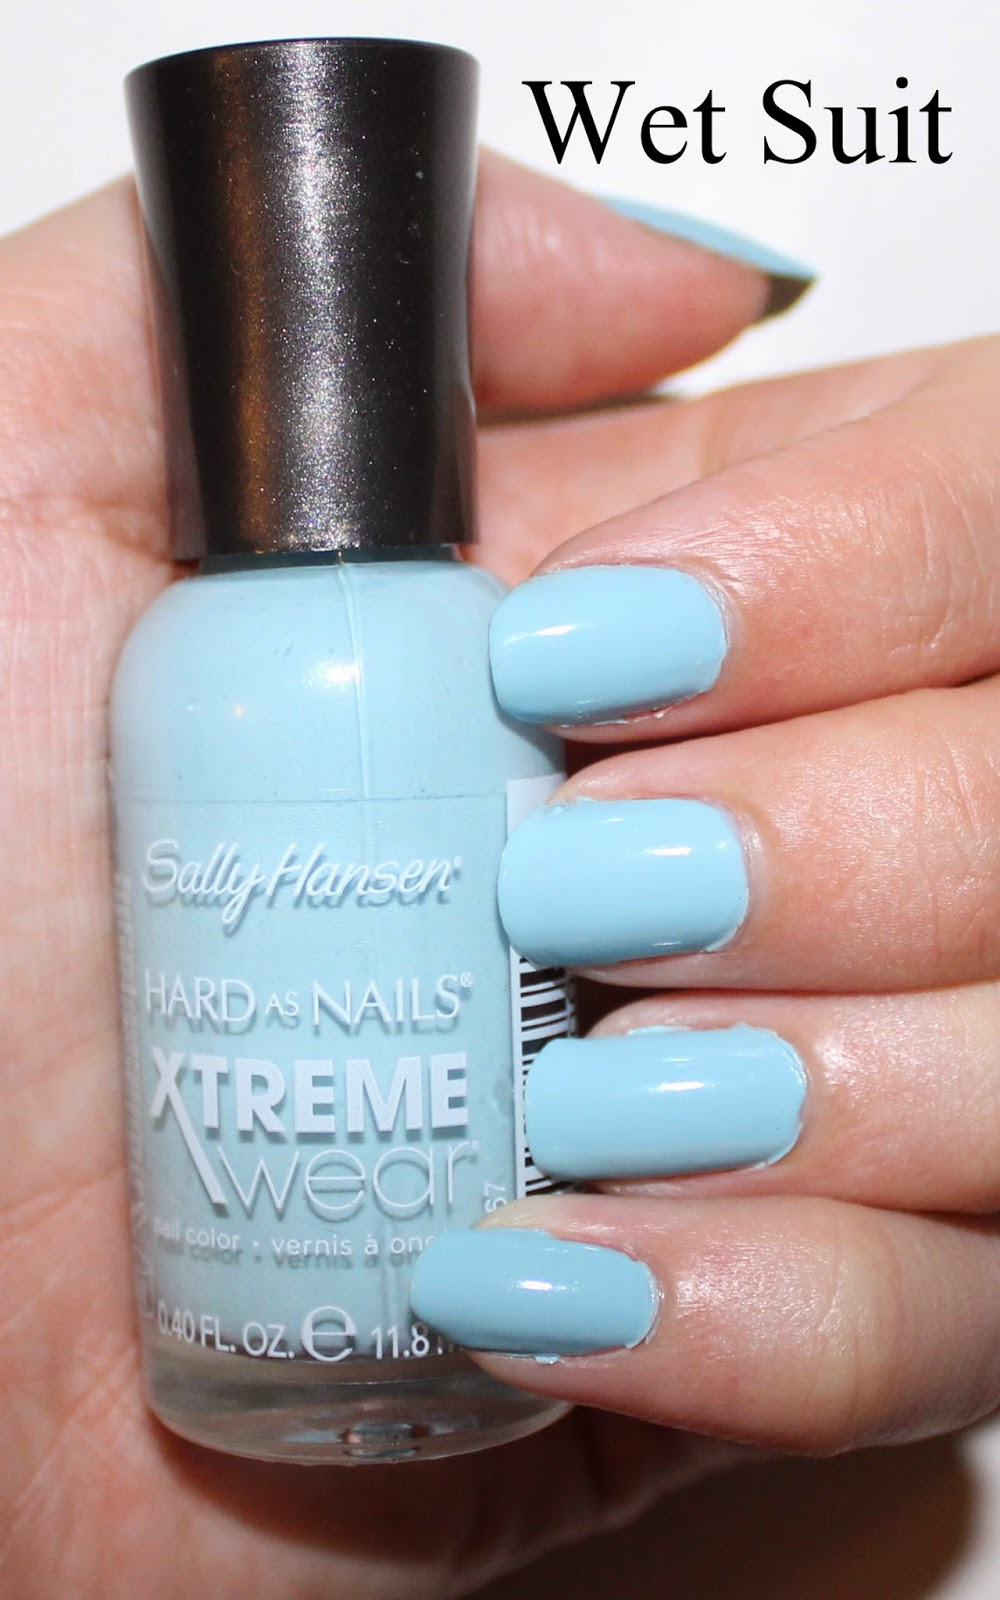 Sally Hansen Xtreme Wear in Wet Suit Swatch